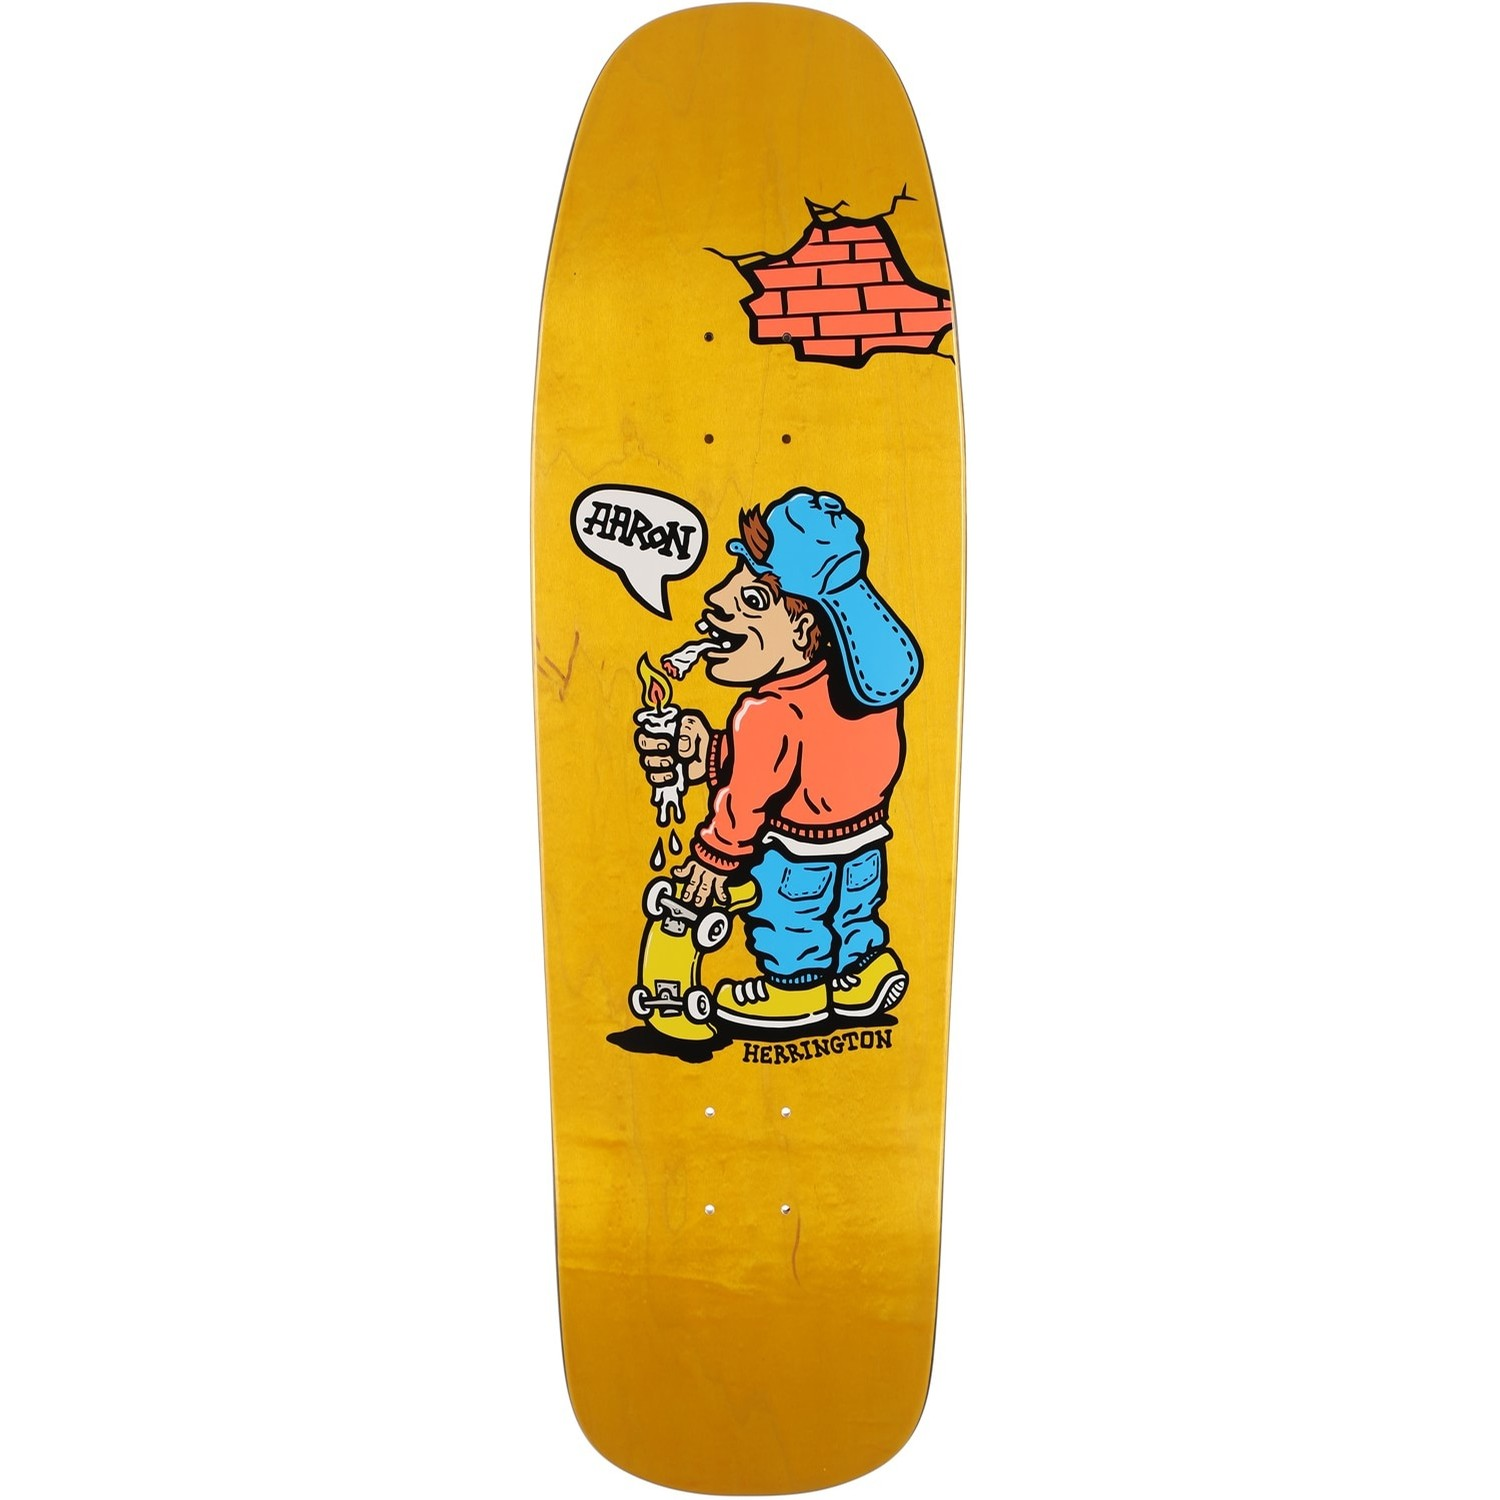 Herrington Cake J Deck (9.25)